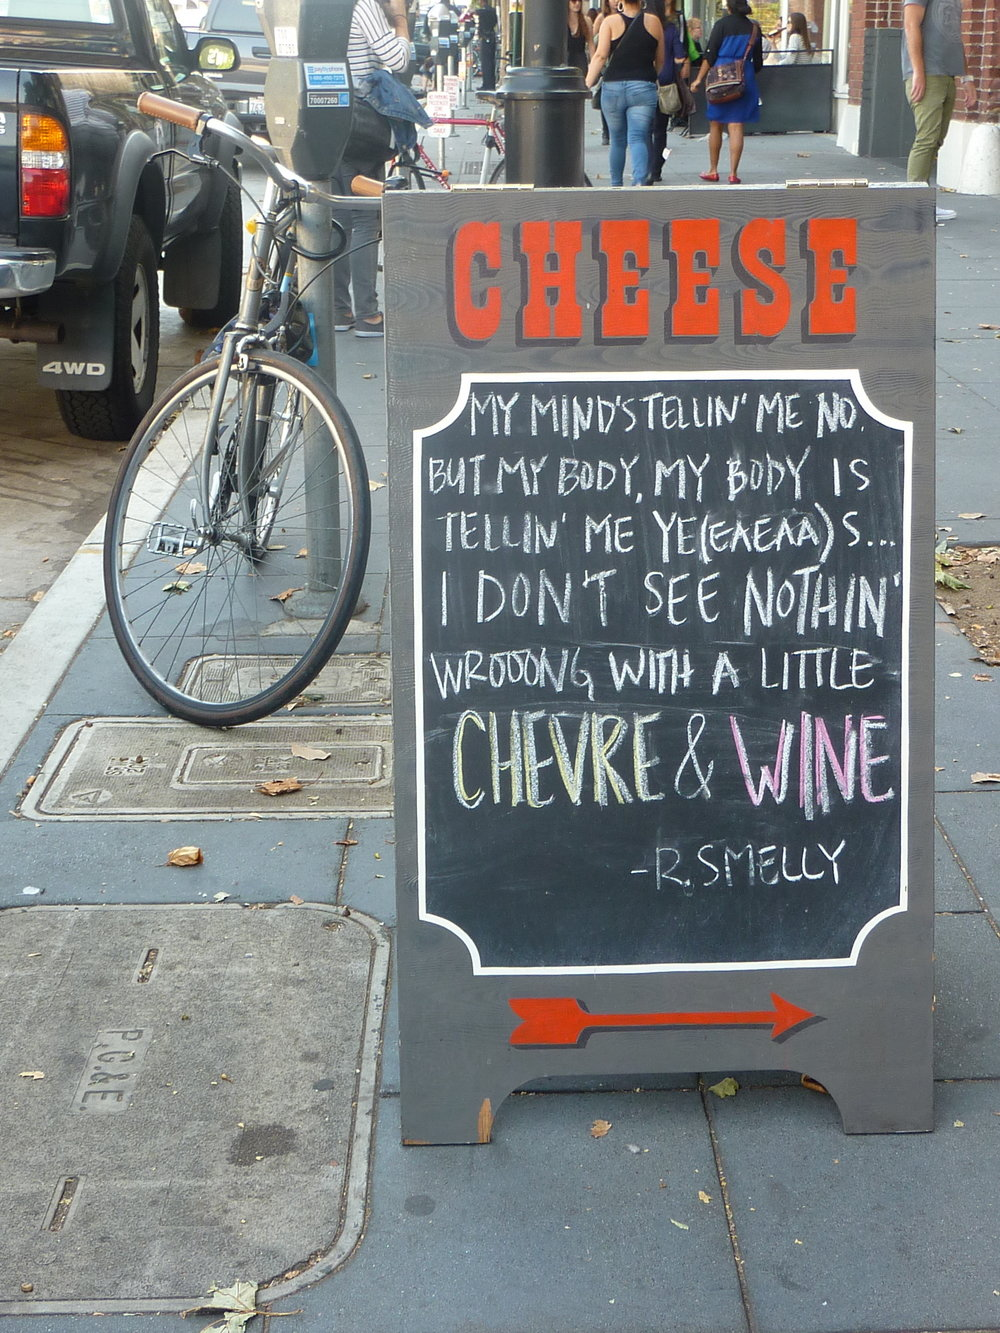 A-FRAME-mission-cheese-sandwich-board_9669449194_o.jpg